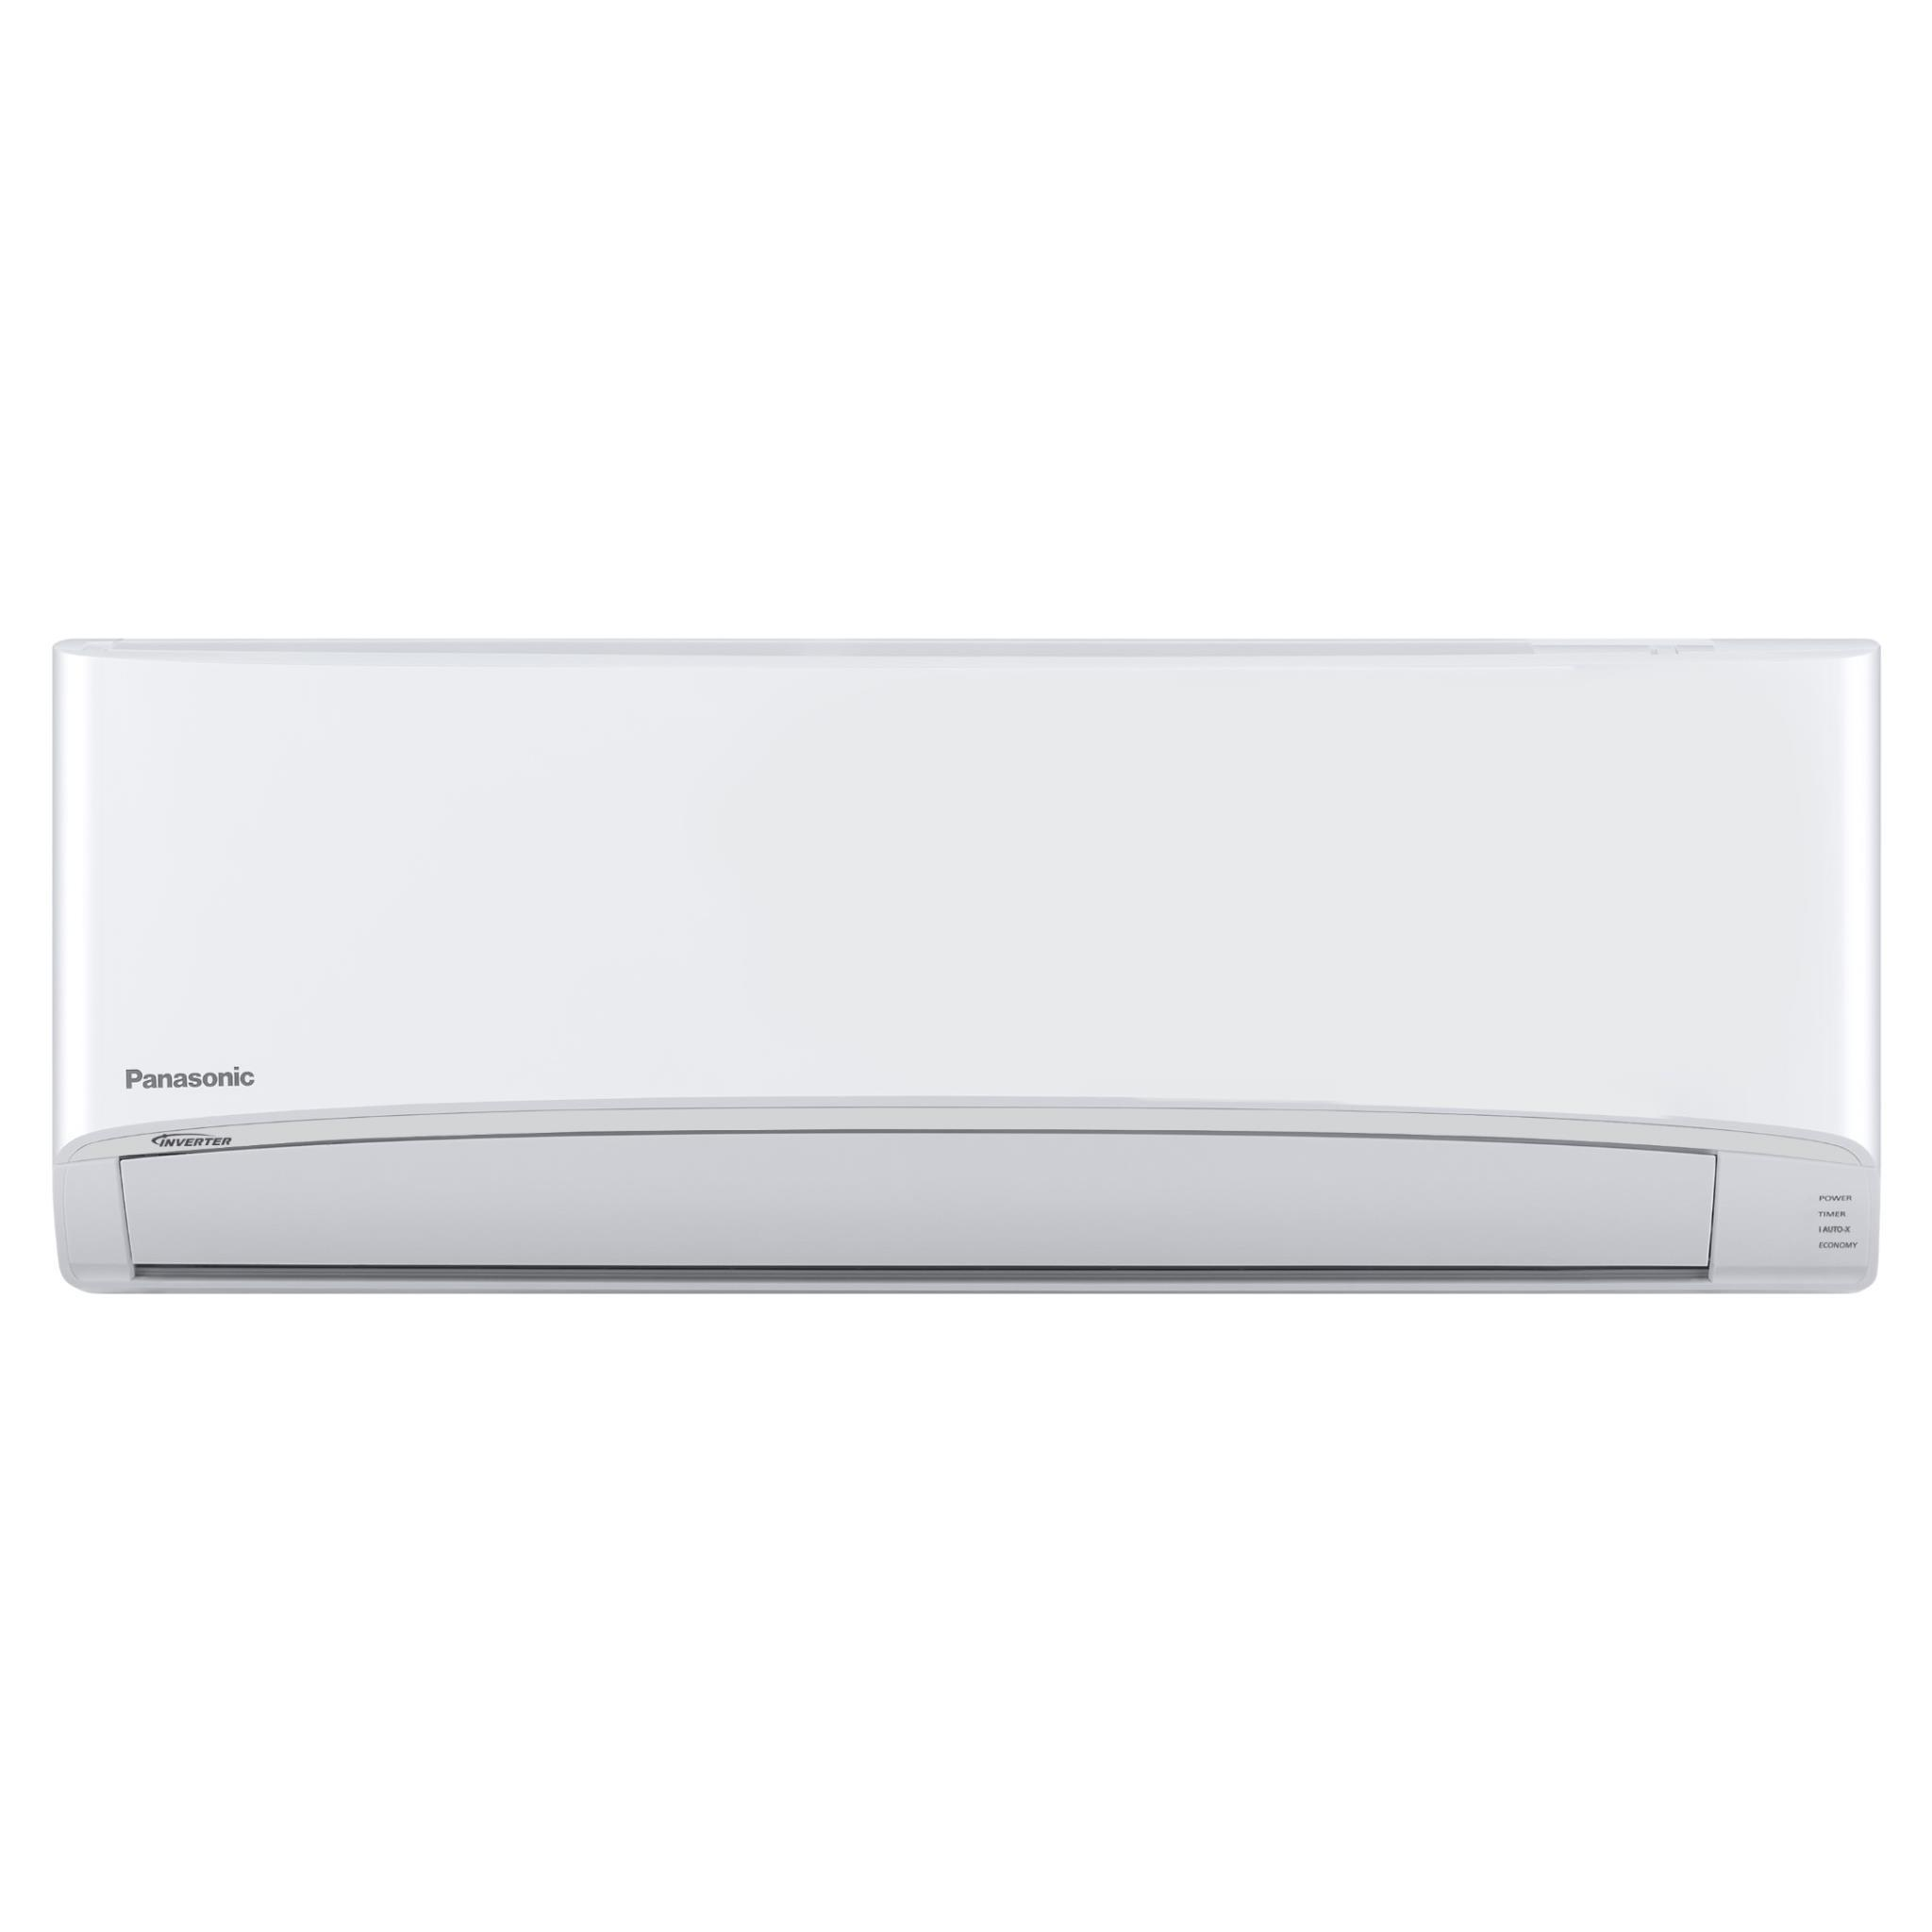 Panasonic 3.5kW Aero Cooling Only Air Conditioner